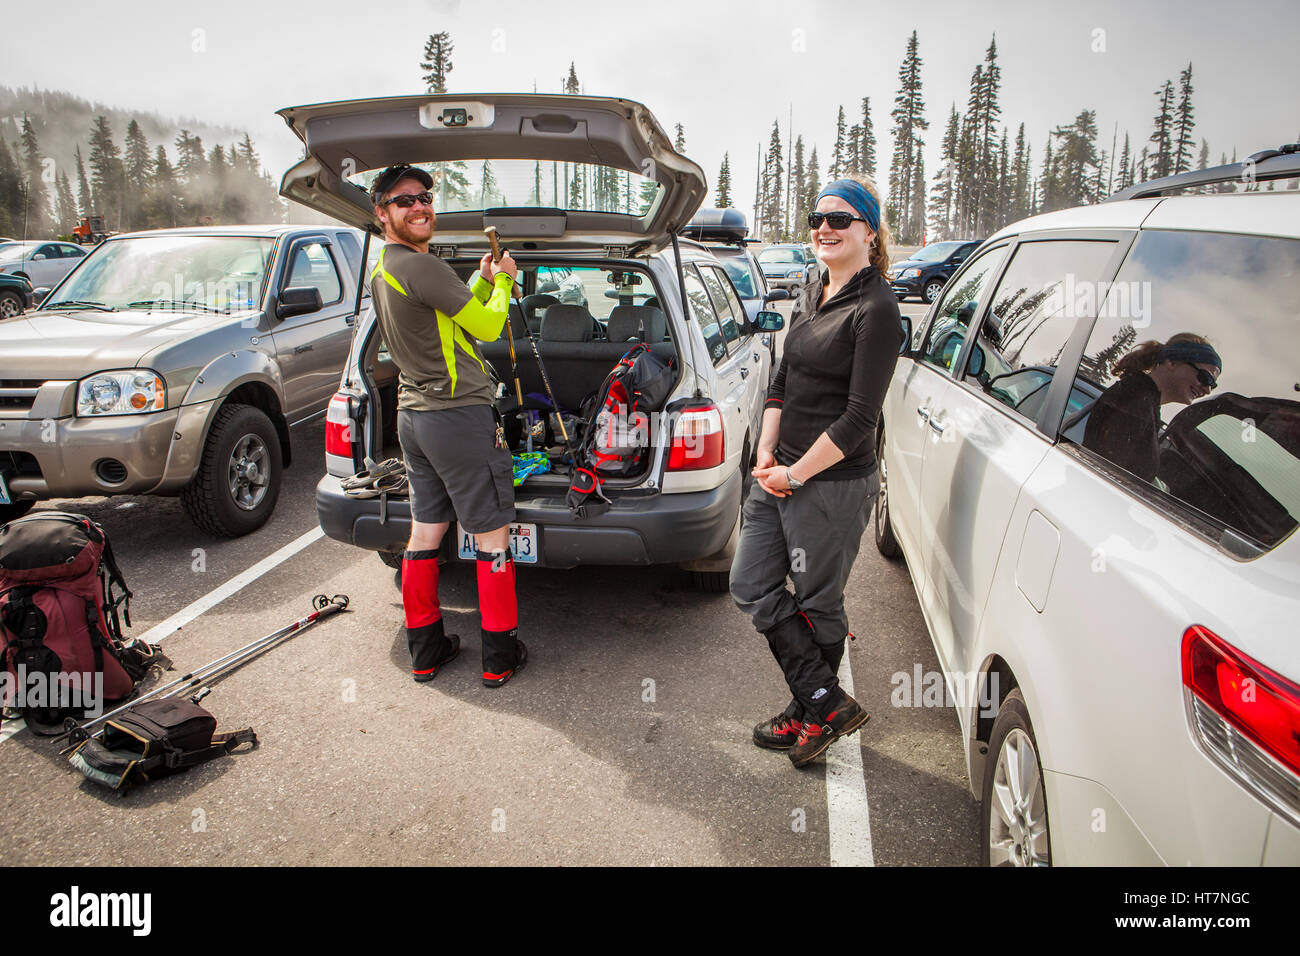 Hikers in the parking lot at Paradise Lodge in Mount Rainier National Park getting ready for a hike up the mountain. - Stock Image